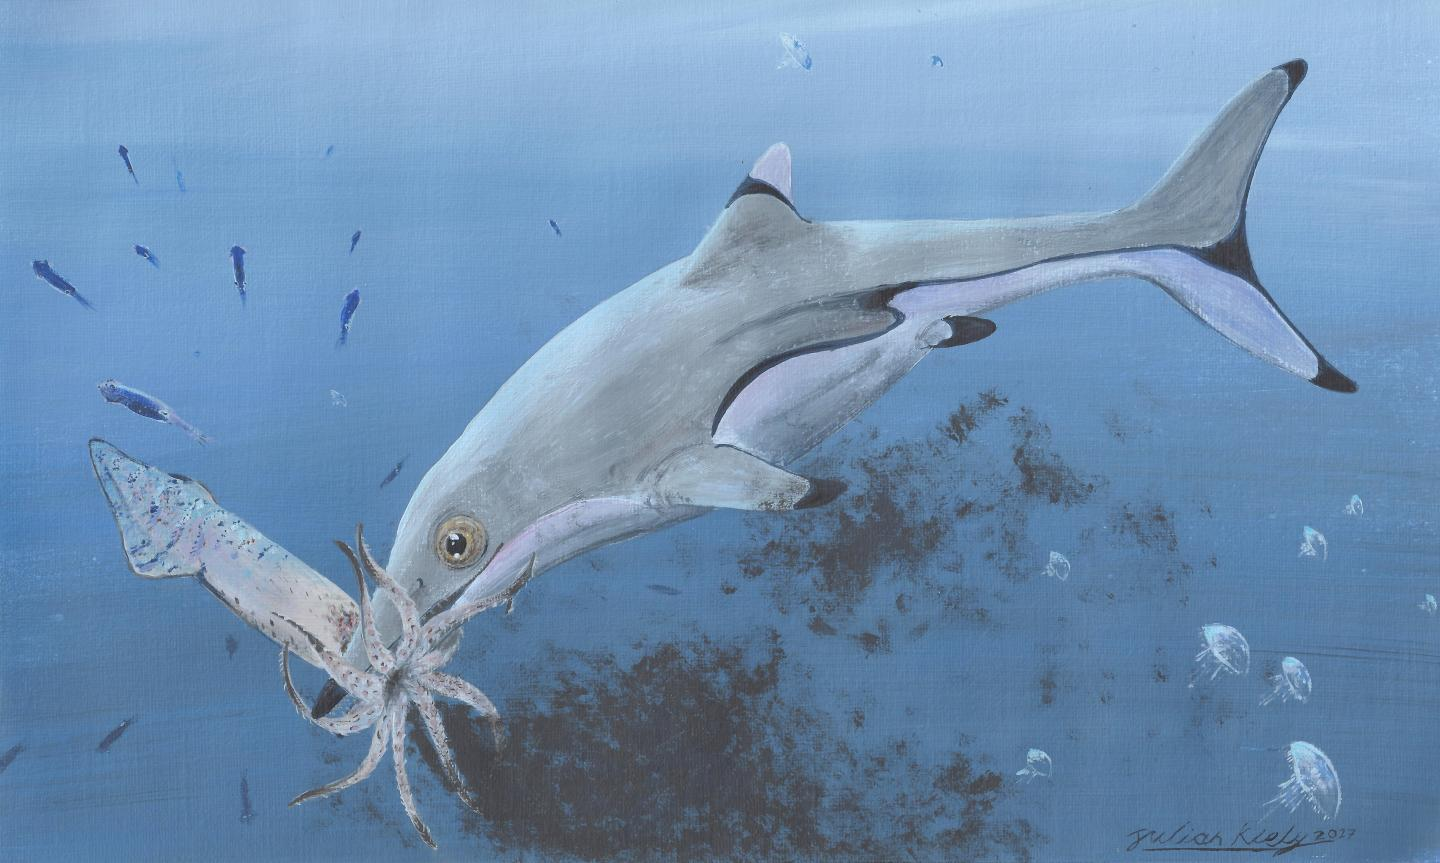 Prehistoric squid was last meal of newborn ichthyosaur 200 million years ago